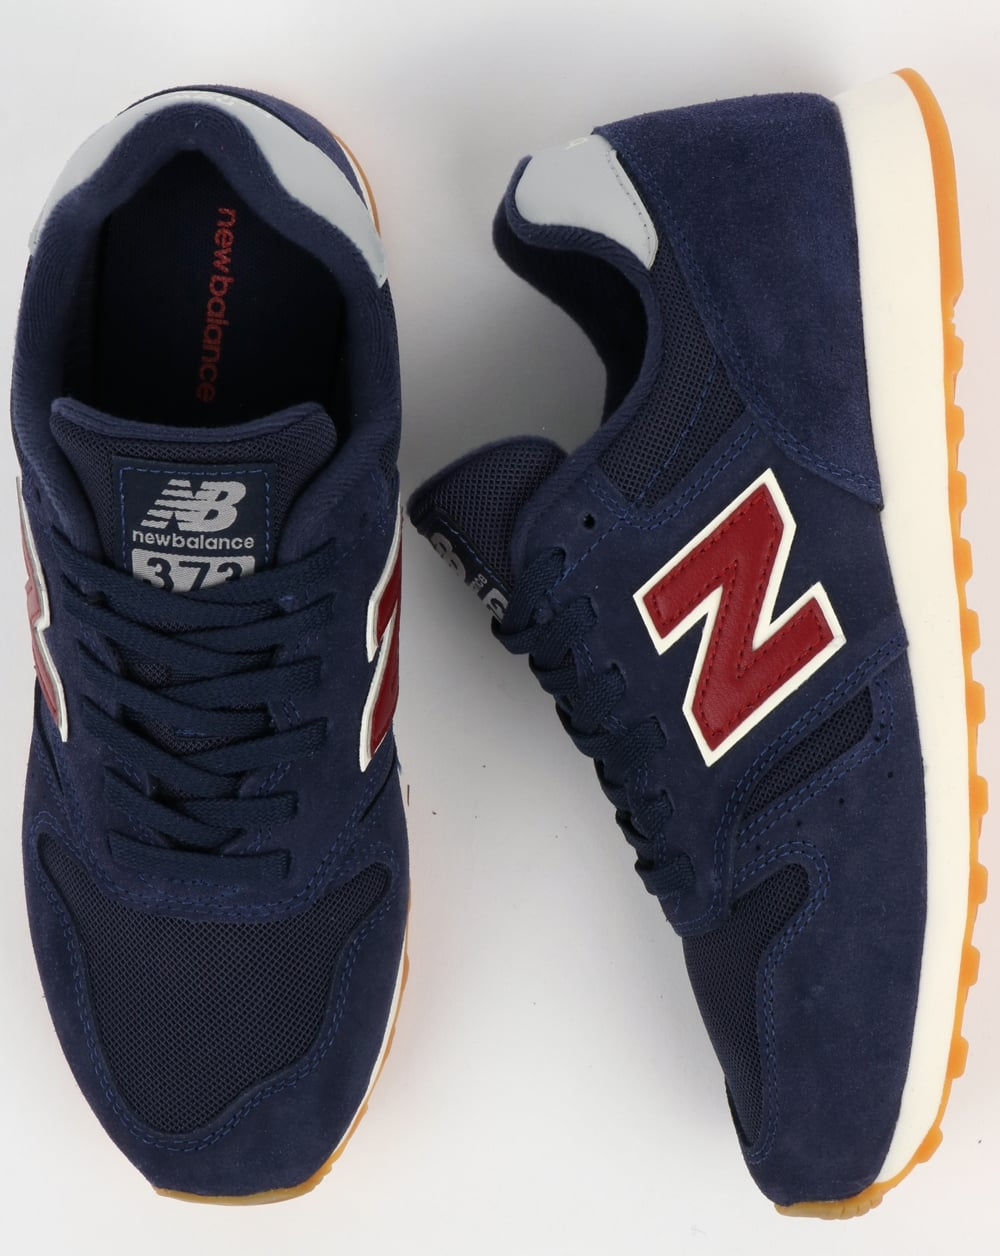 quality design 8fdc6 6f393 New Balance 373 Trainers Navy/Red